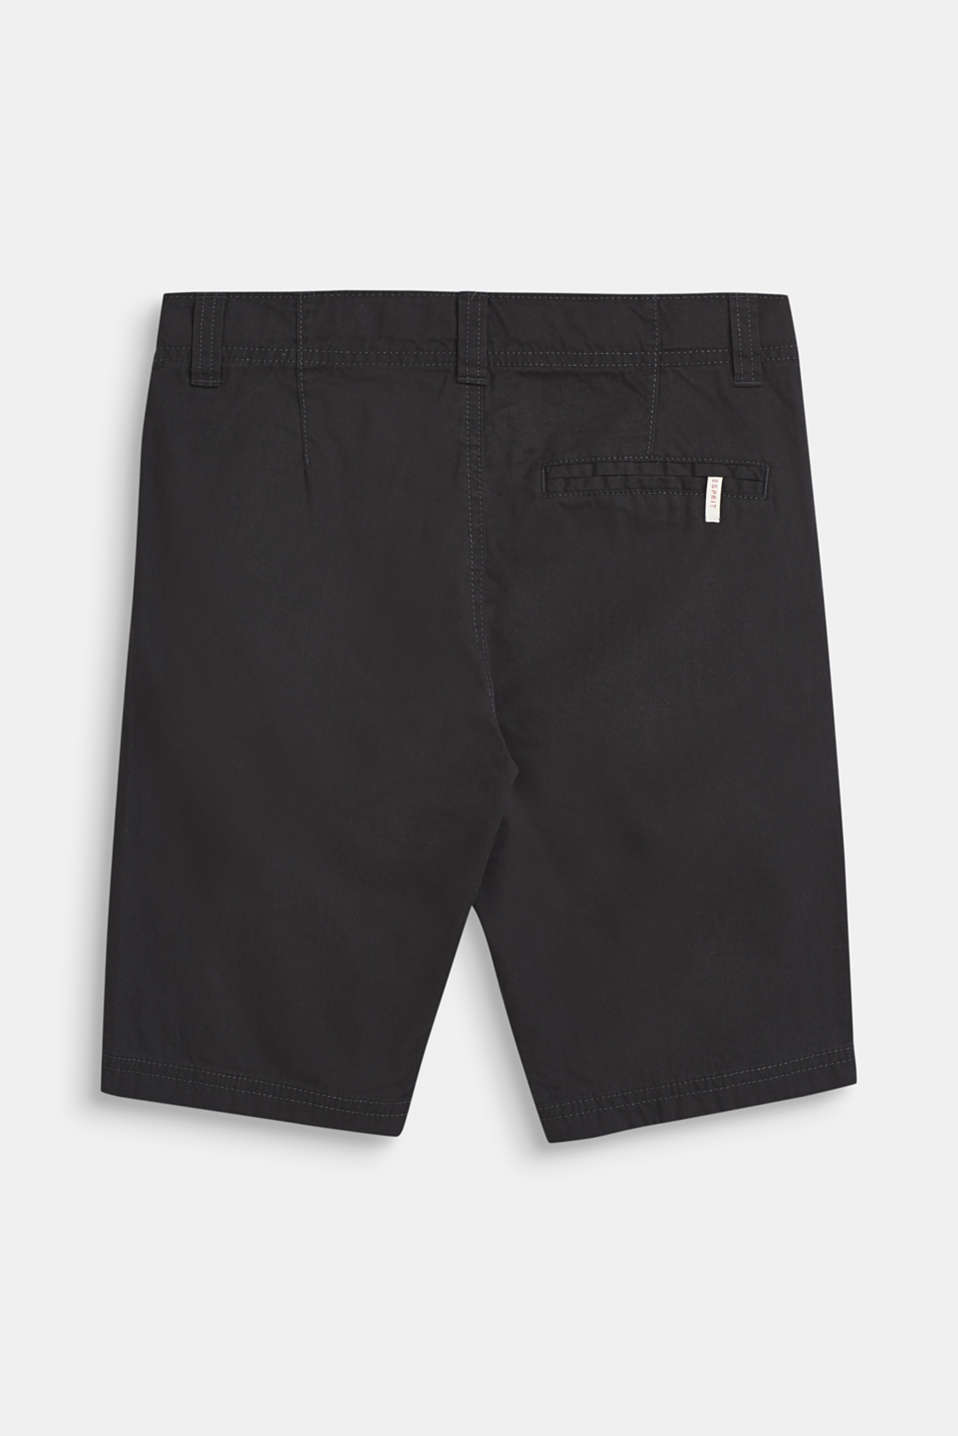 Bermuda shorts in 100% cotton, LCDARK GREY, detail image number 1